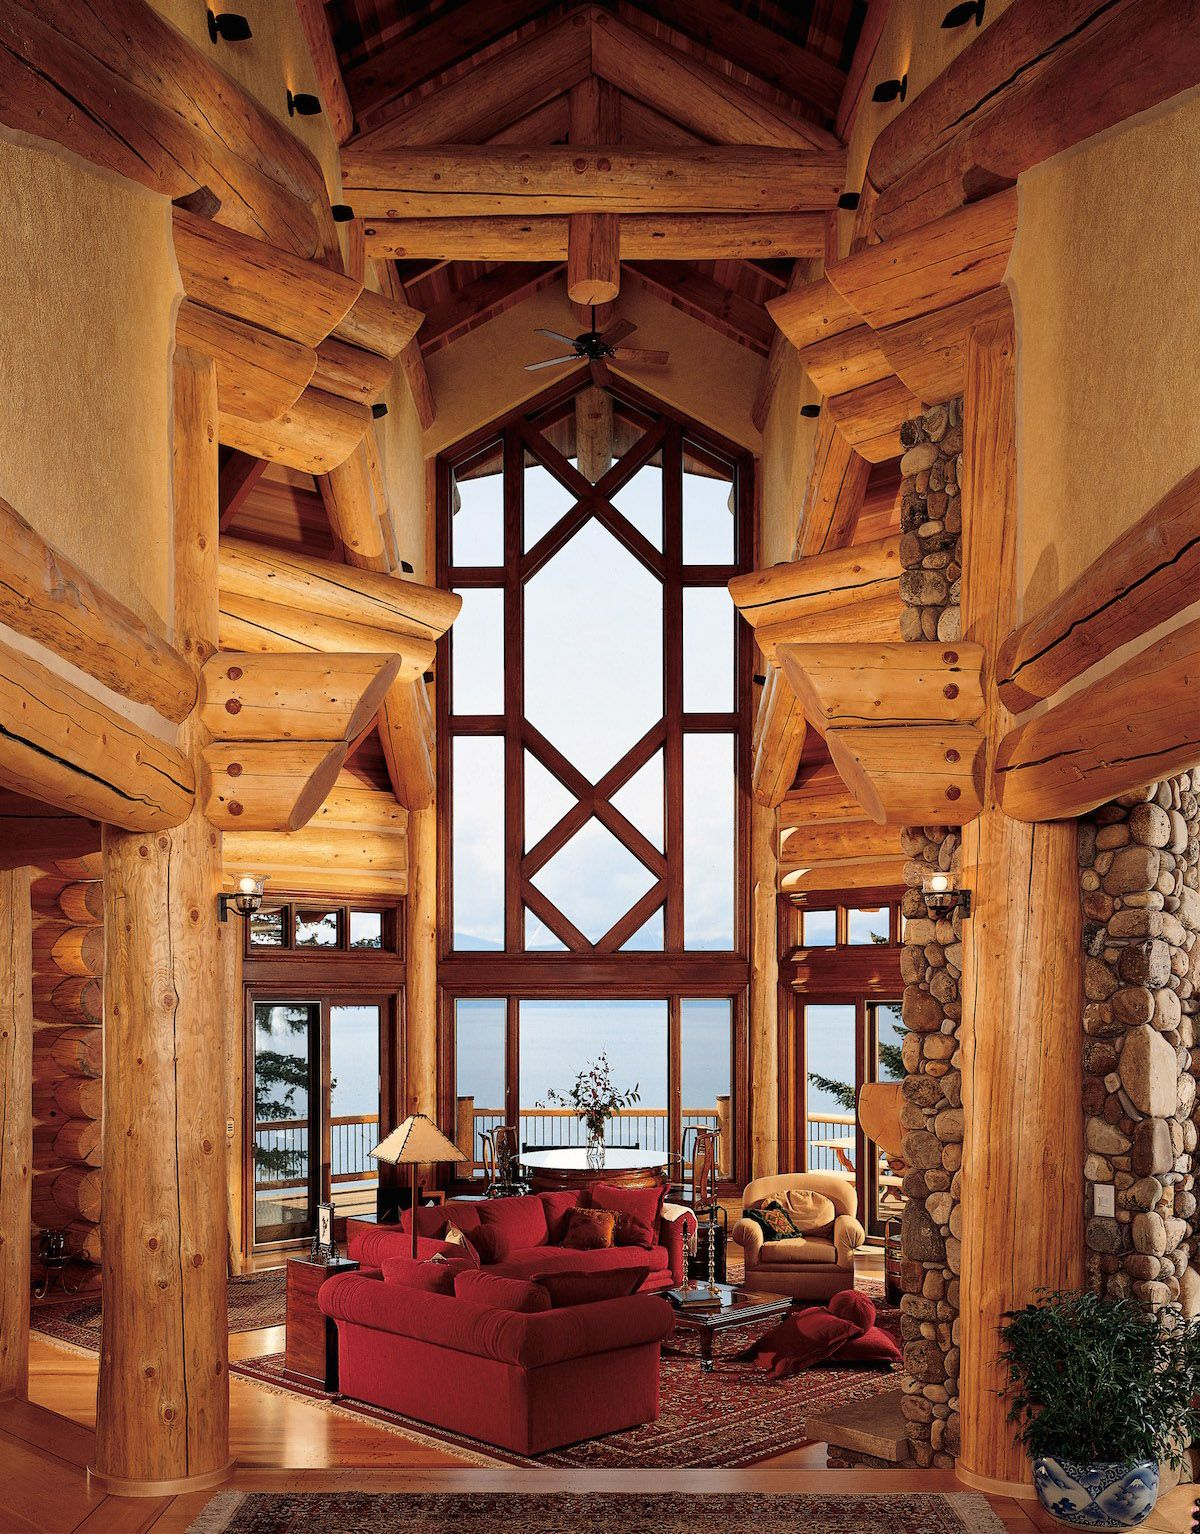 pioneer log homes lake home cabins pinterest logs lakes and cabin. Black Bedroom Furniture Sets. Home Design Ideas